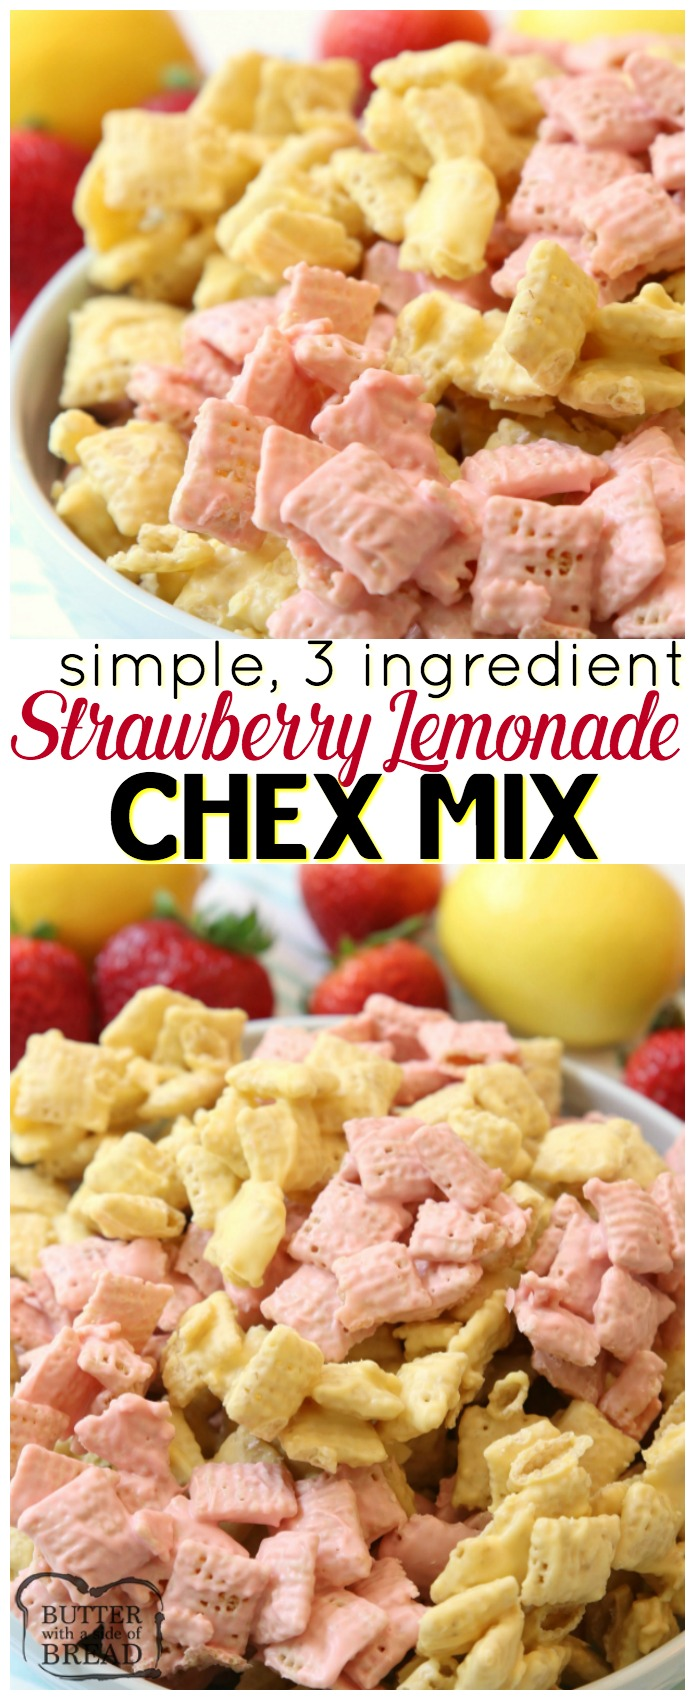 Strawberry Lemonade Chex Mix made easy in under 10 minutes with just 3 ingredients! Great flavor and everyone loves munching on this fun Chex Mix. Simple Chex mix recipe with strawberry lemon flavors perfect for any day that needs a little more fun! #chex #chexmix #strawberry #lemonade #dessert #candy #candymelts #recipe from Butter With A Side of Bread